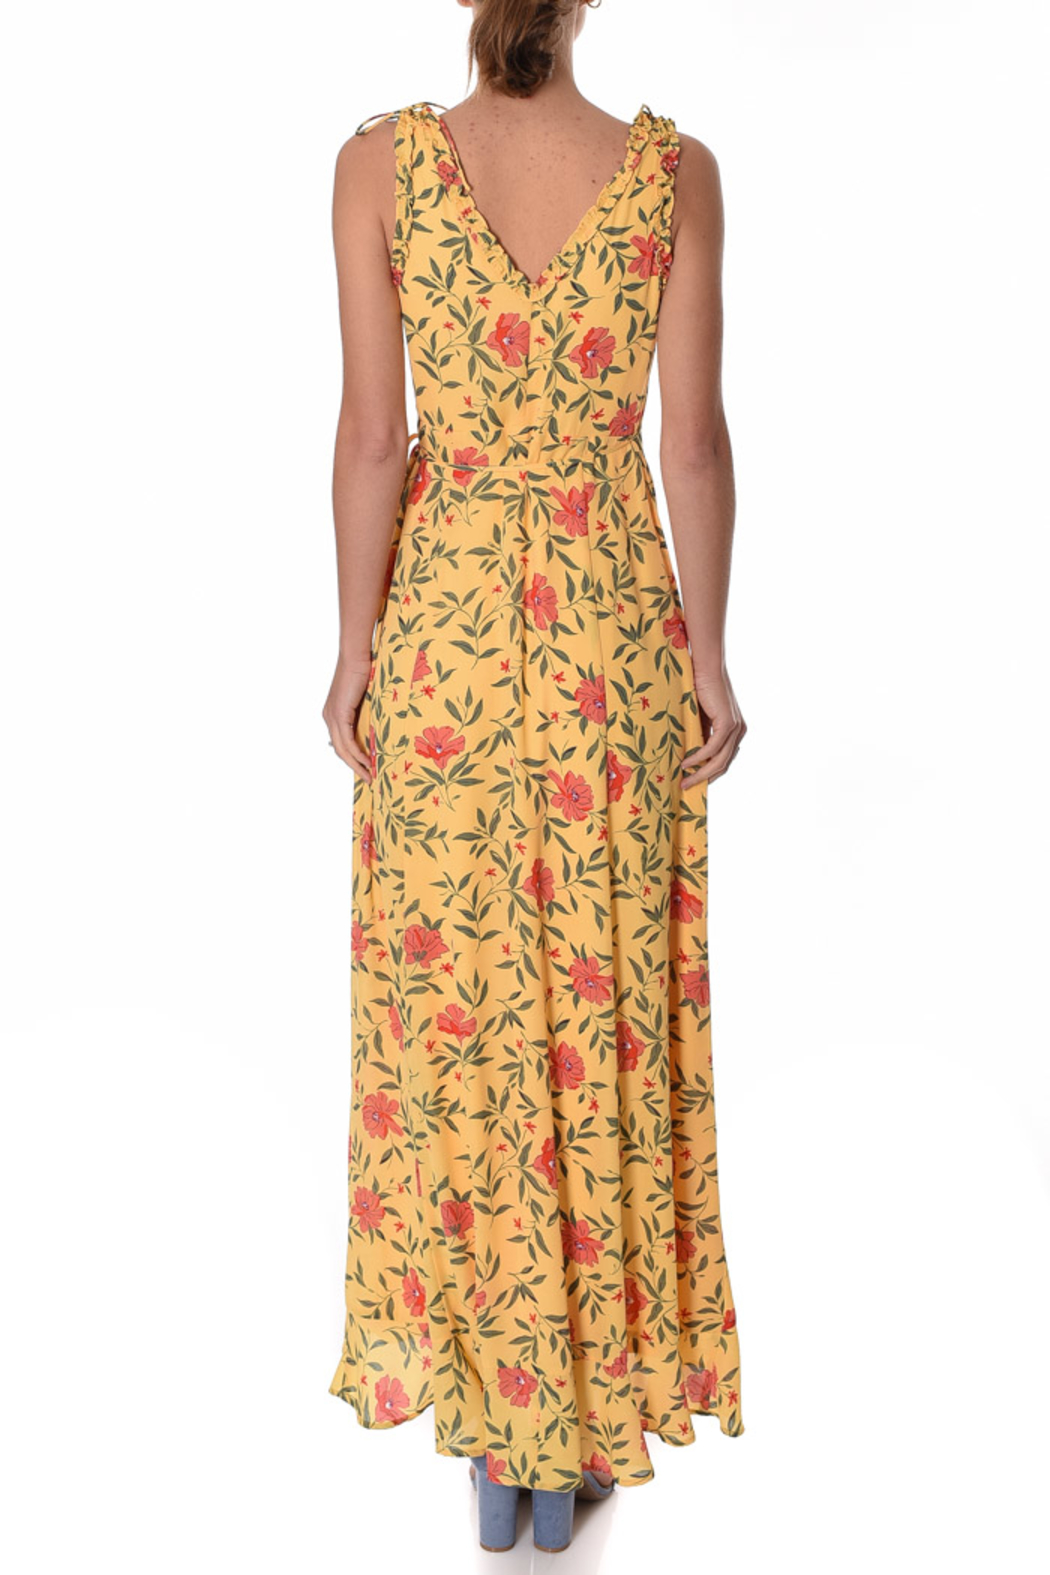 If By Sea Hi-Lo Wrap Dress - Front Full Image